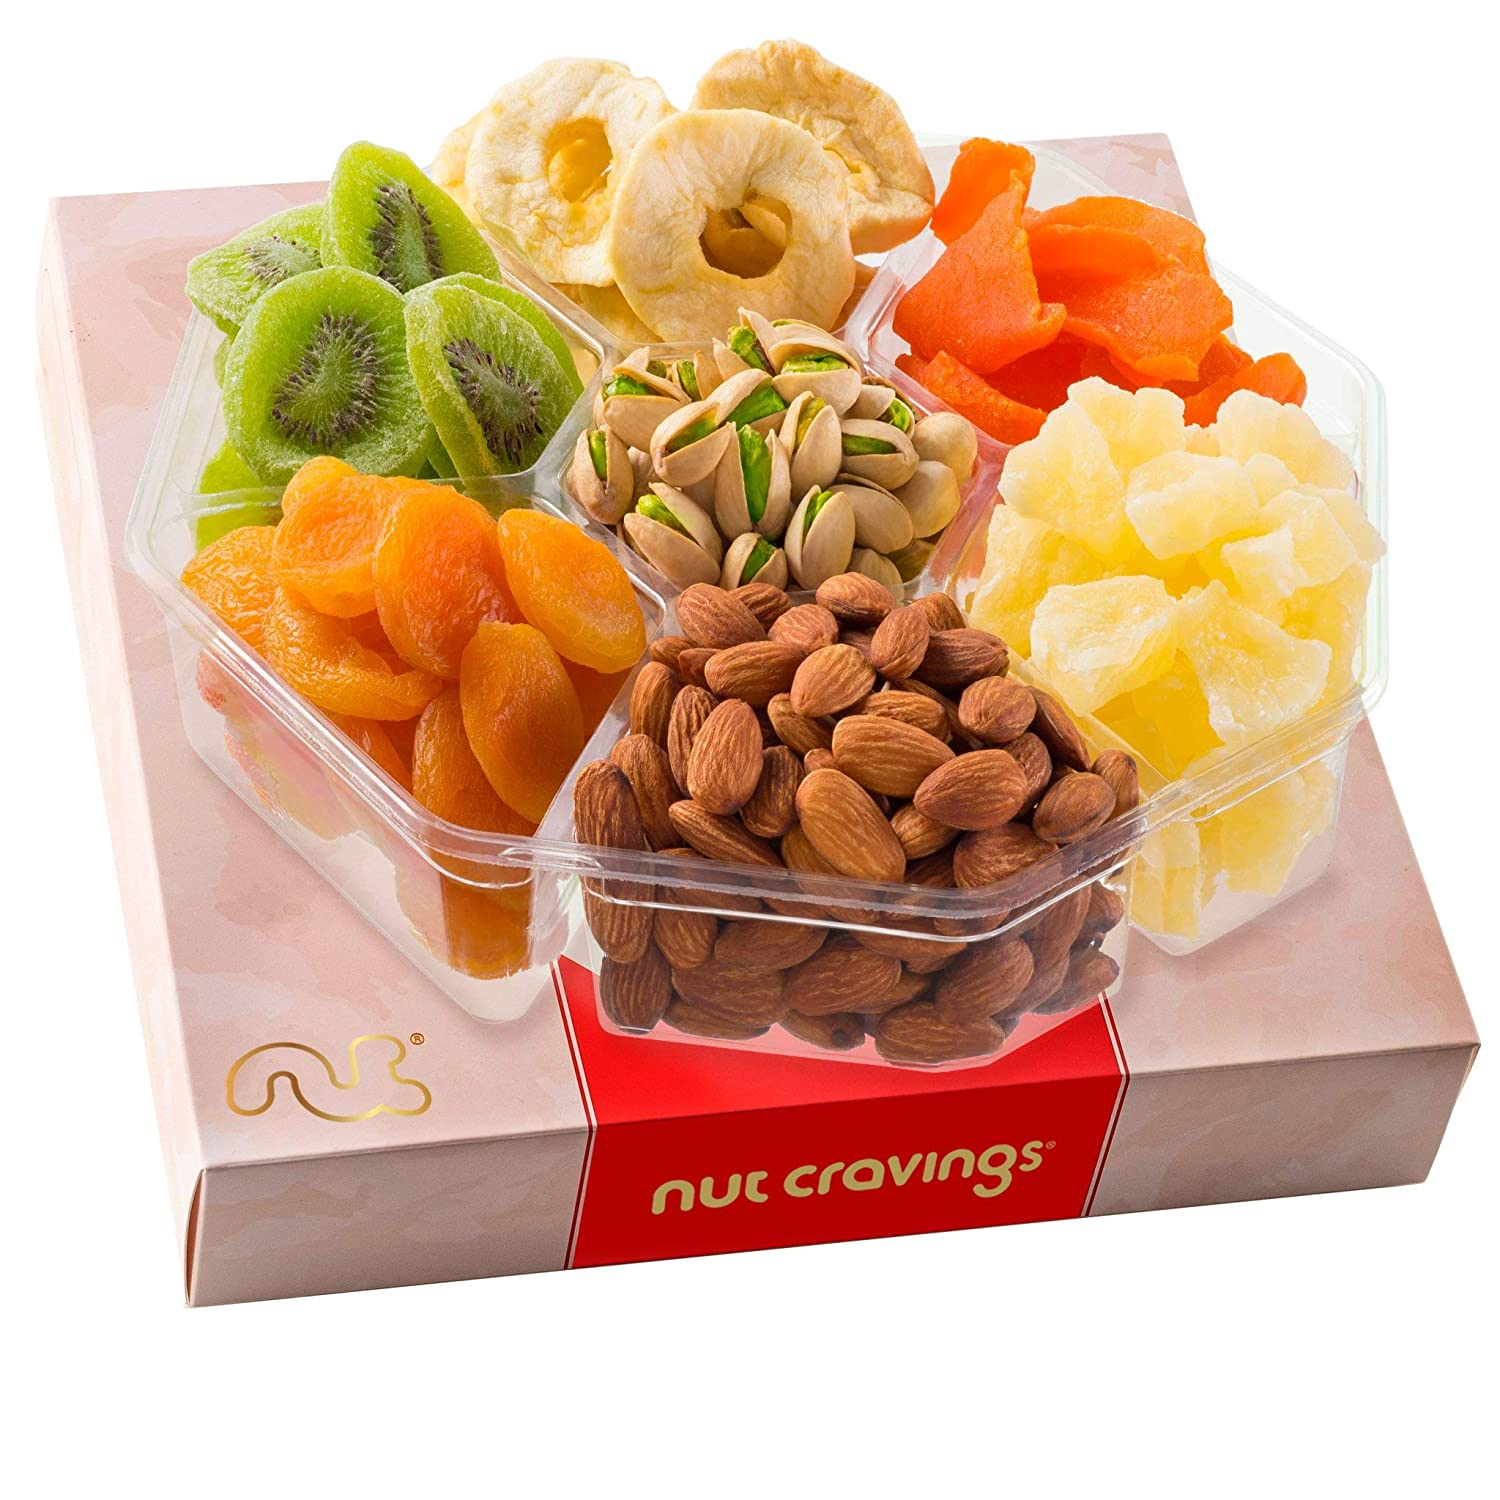 Gourmet Dried Fruit & Nut Gift Basket, Red Box (XL Tray 7 Mix) - Easter Food Arrangement Platter, Care Package Variety, Prime Birthday Assortment, Healthy Kosher Snack Tray for Women, Men, Adults